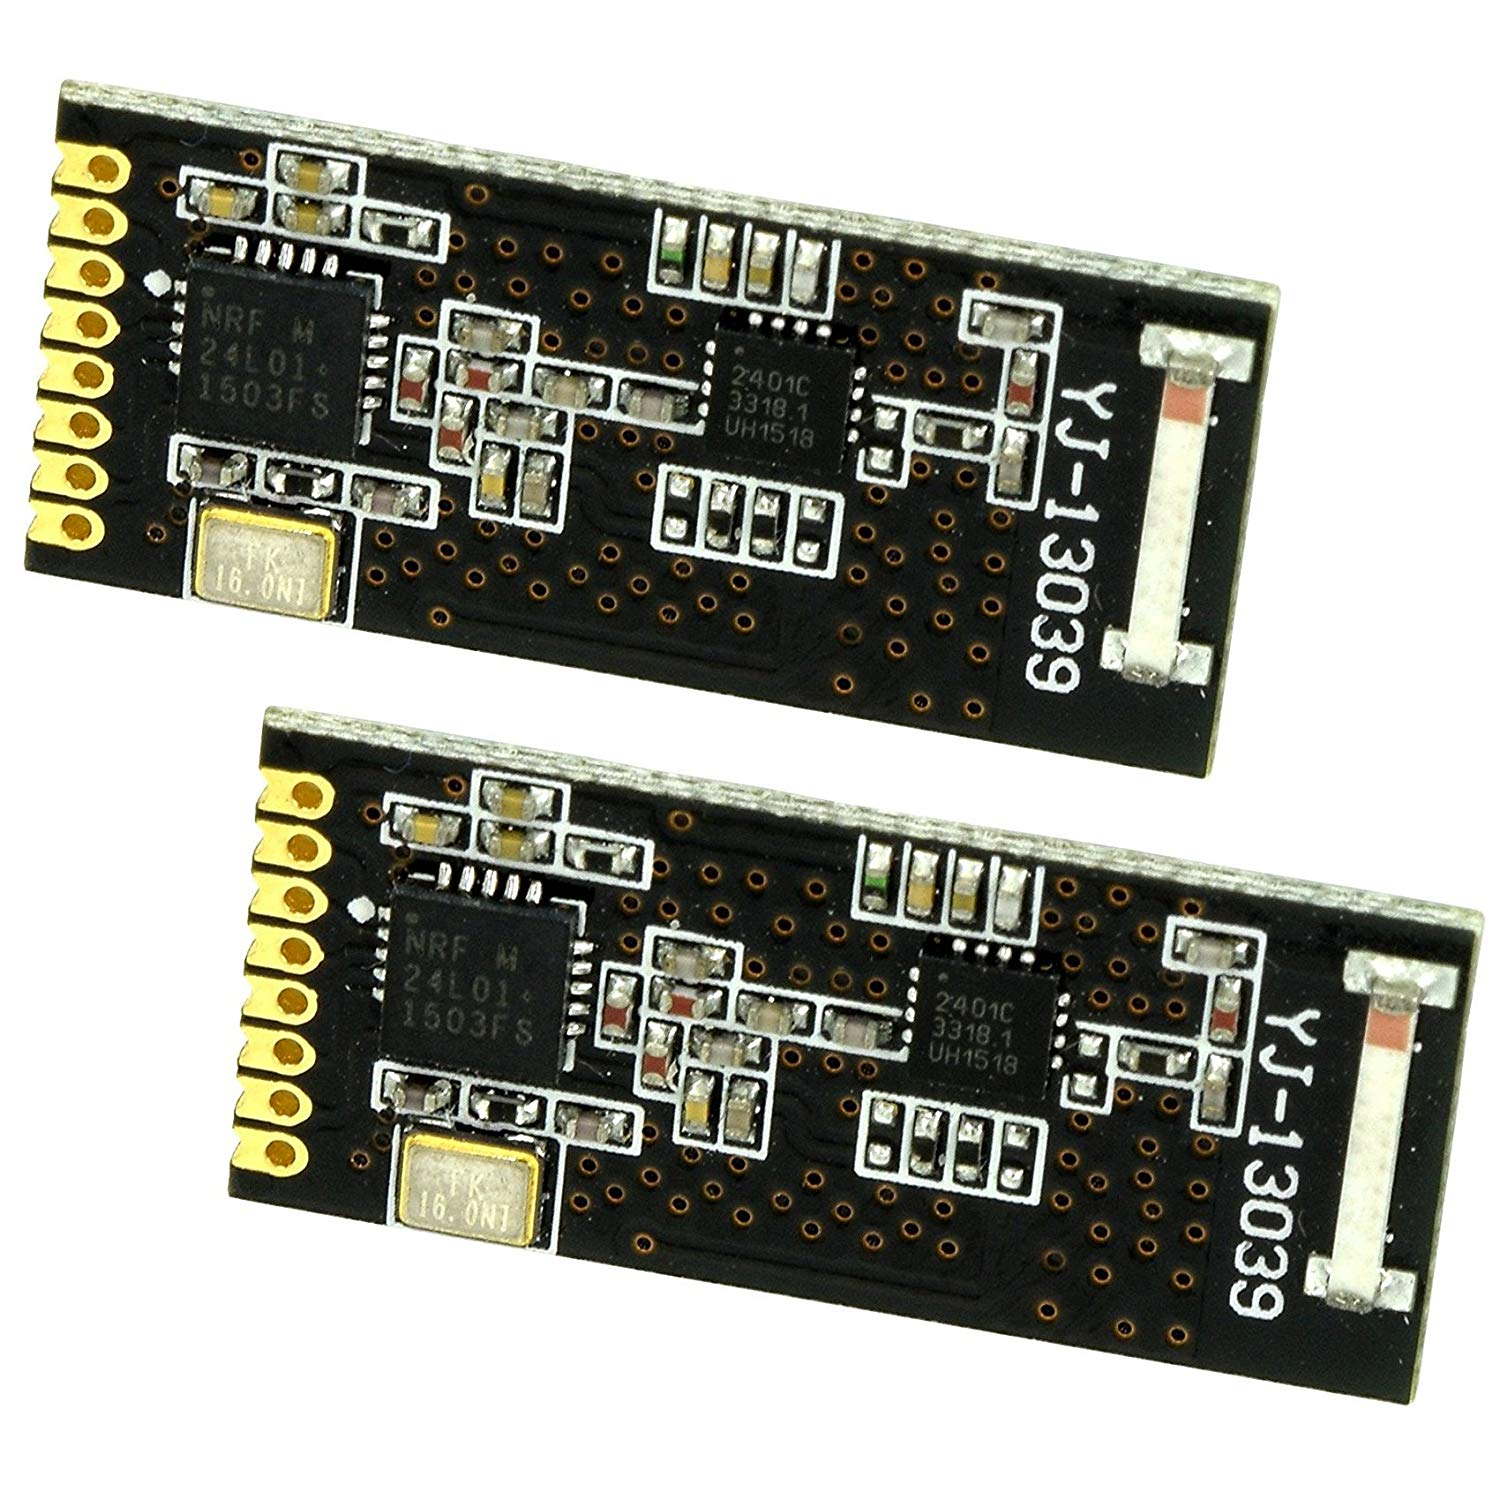 2pcs Miniature Long Range nRF24L01 Transceiver PA + LNA (with a single line of pins) by Optimus Electric